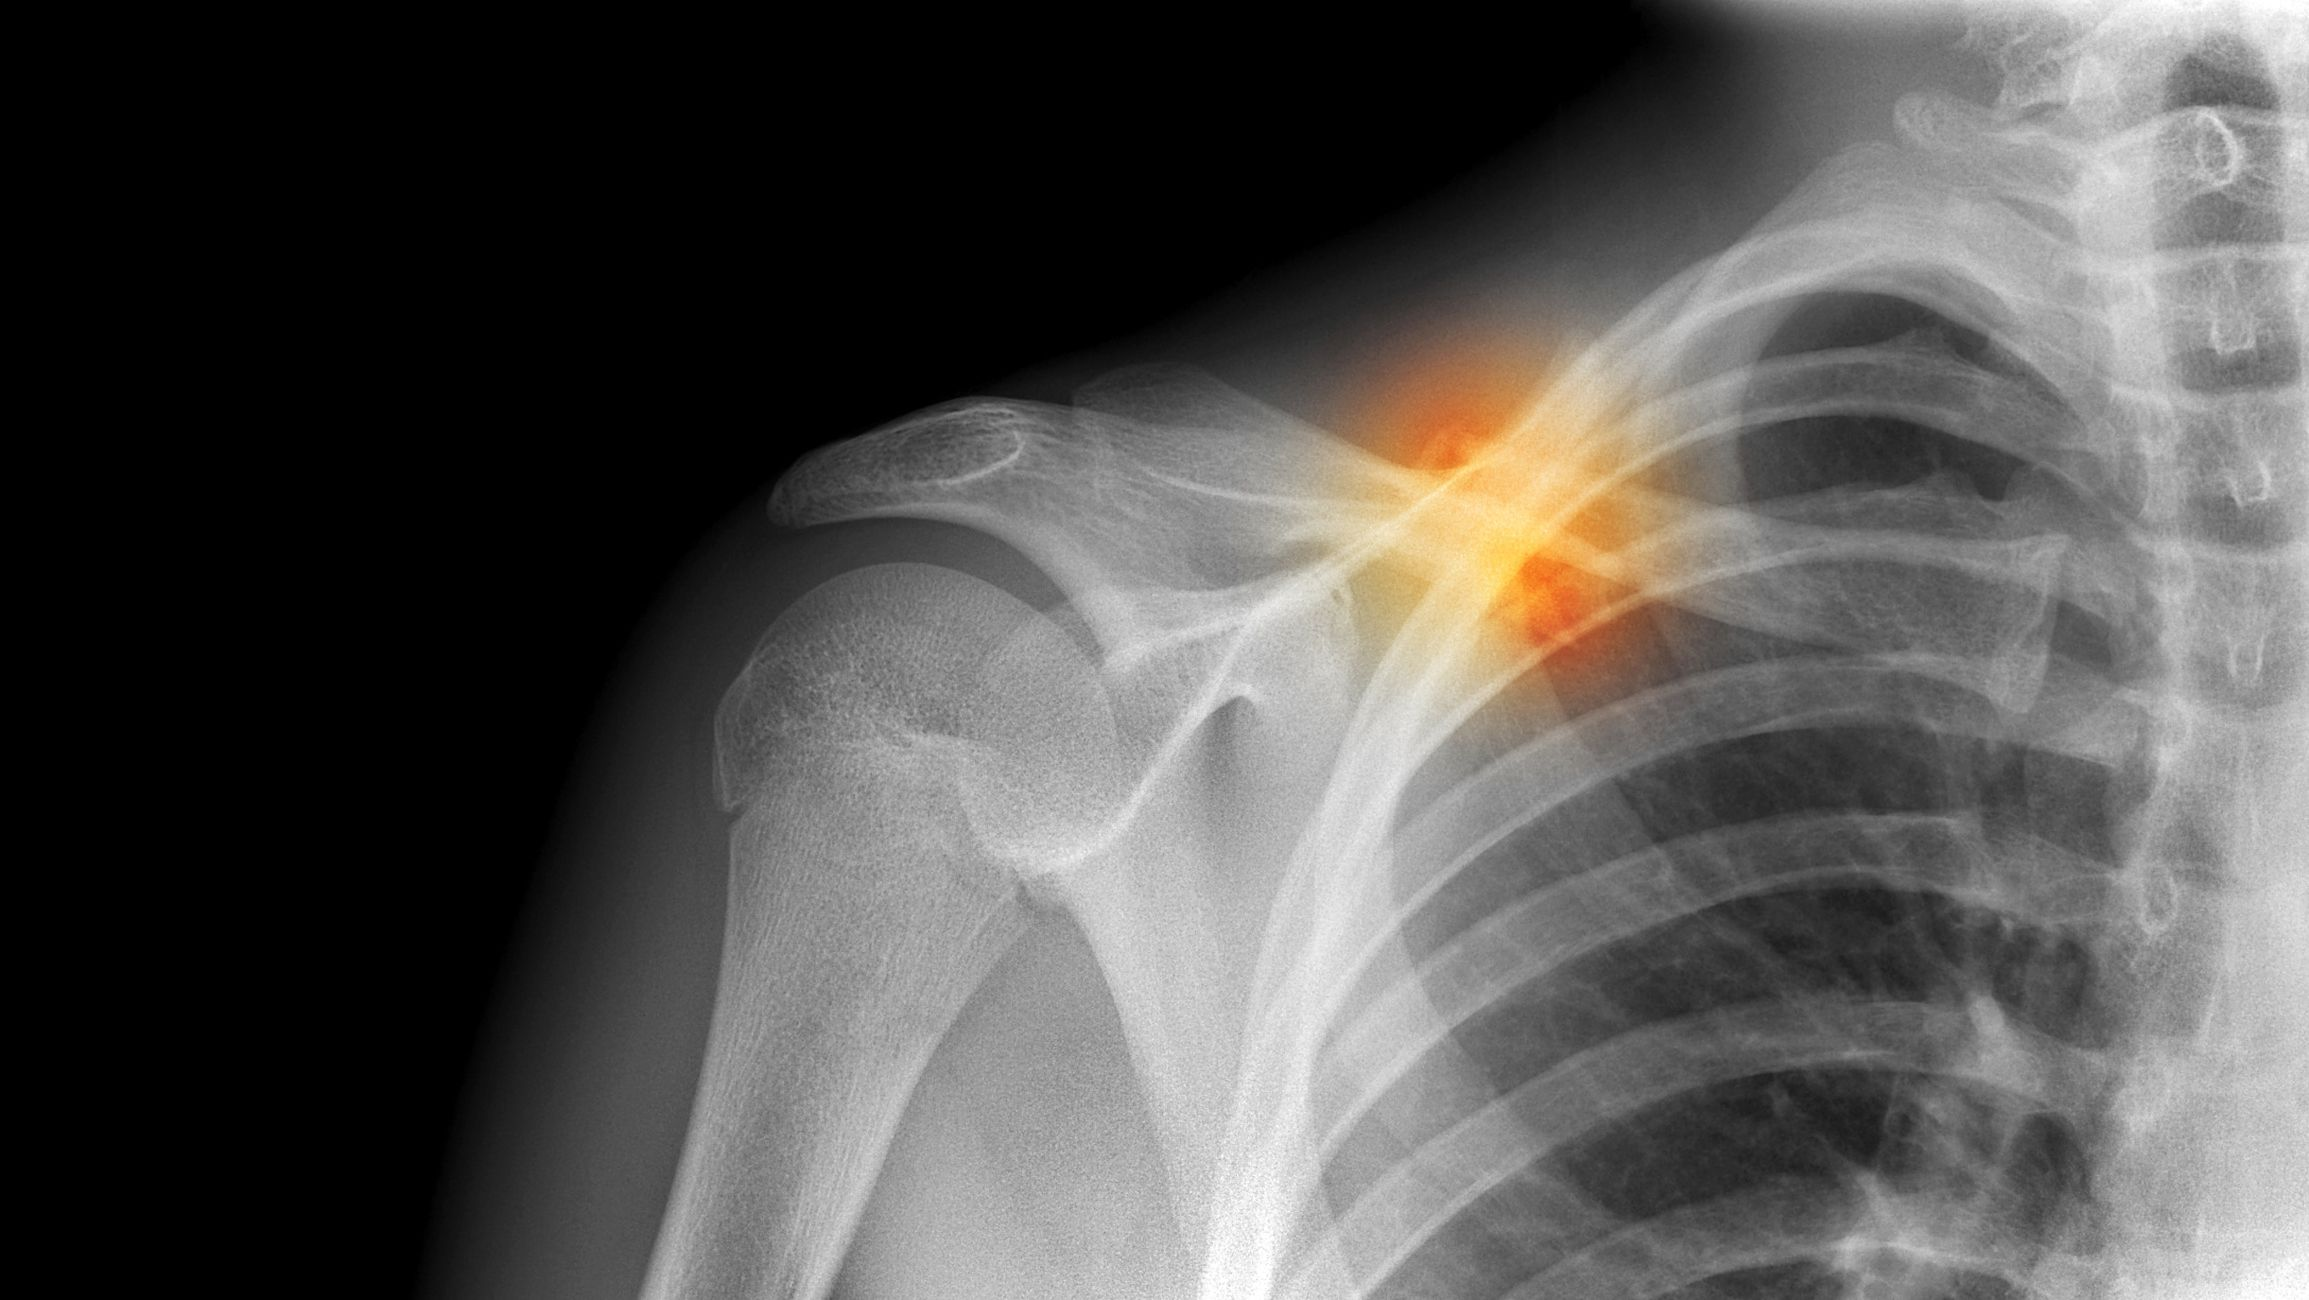 Abscessation Osteomyelitis And Fracture Of The Sternum In: Collarbone Pain: Causes, Diagnosis, And Treatment